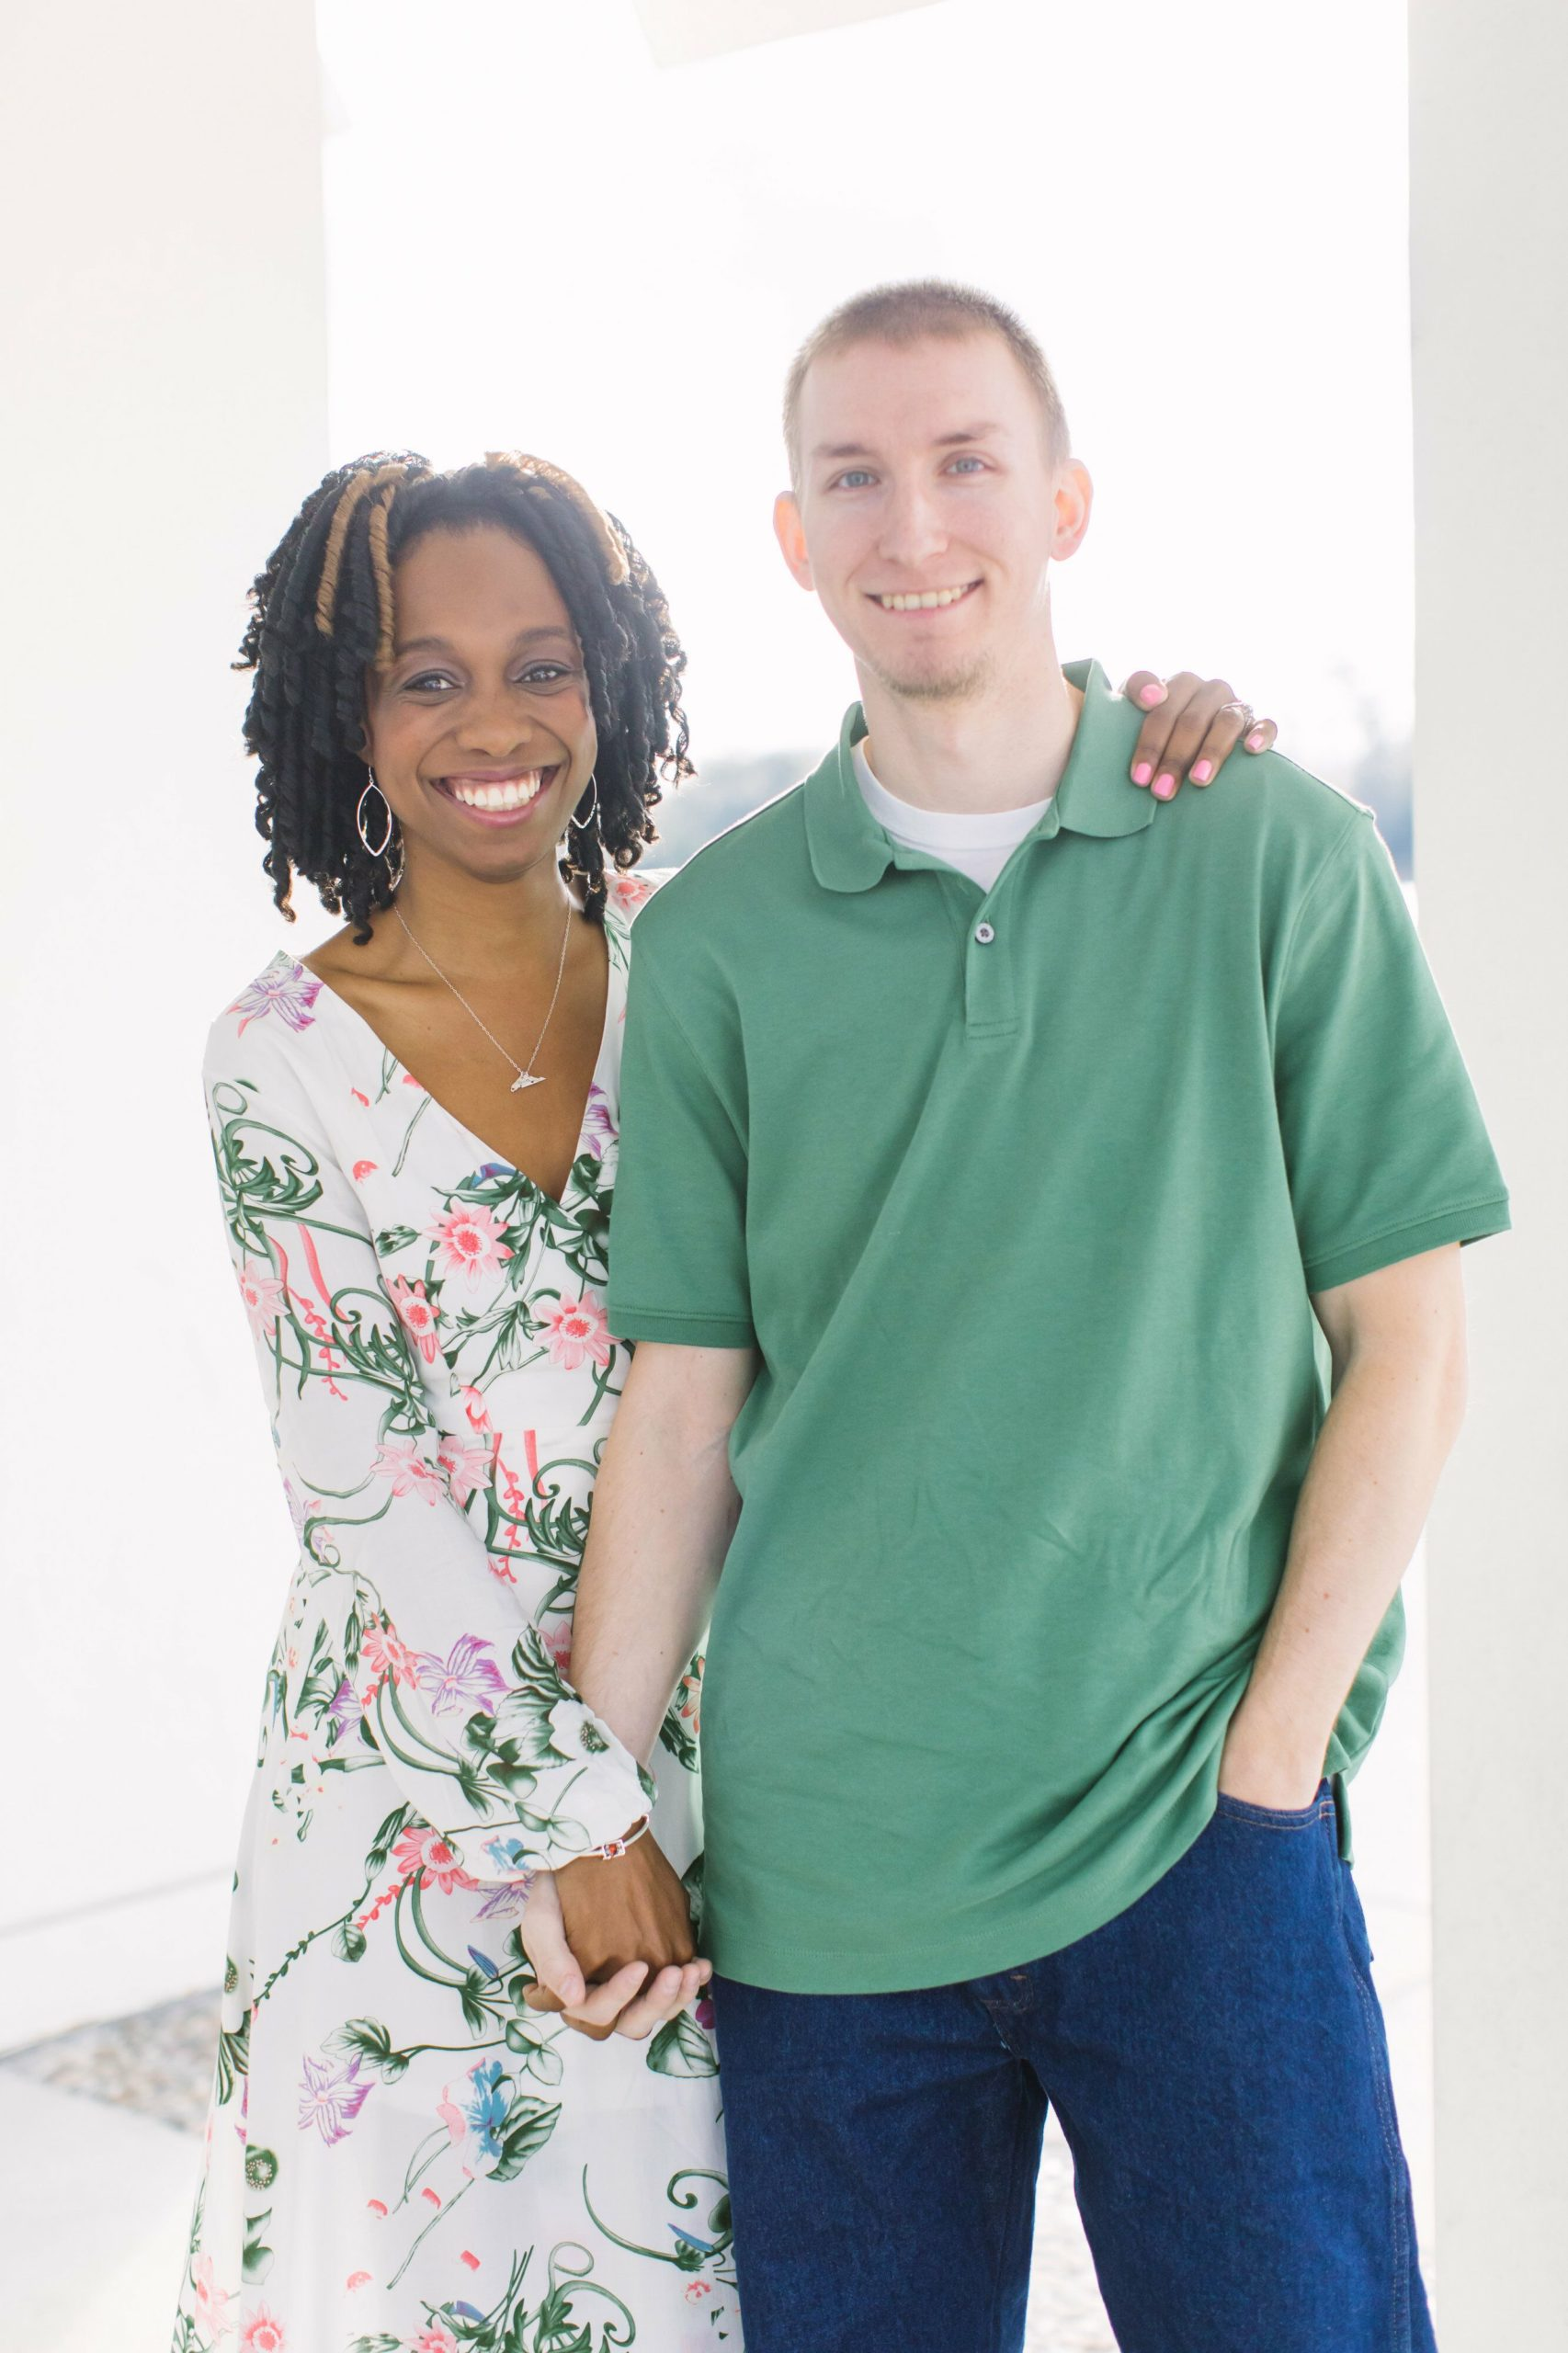 African American Female Bride with Caucasian Male Groom in Green Shirt